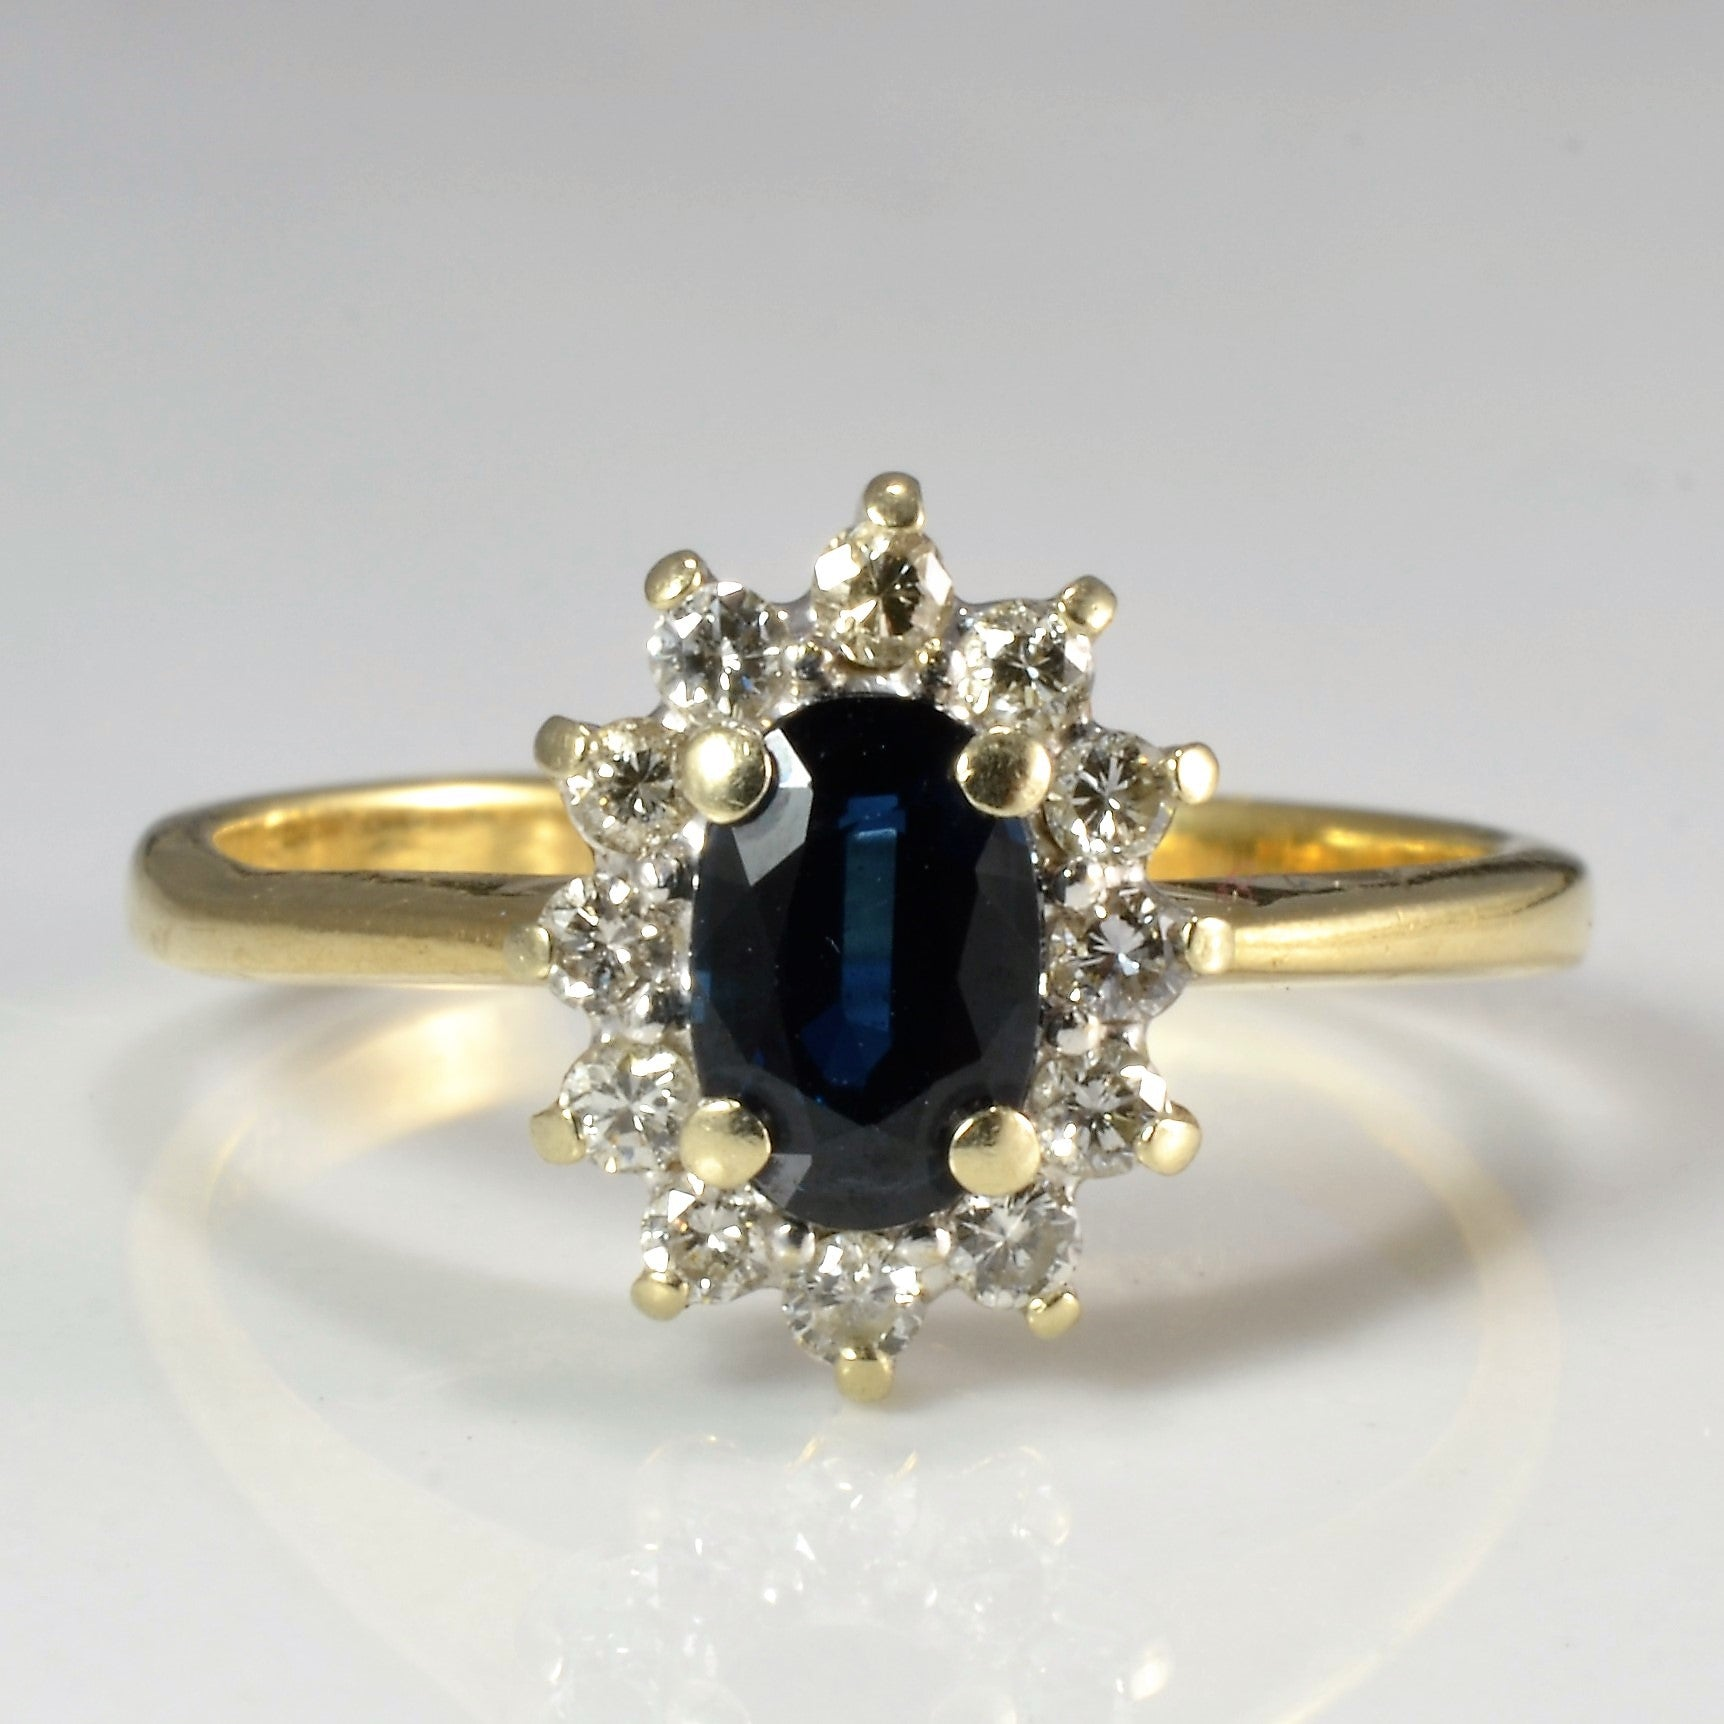 Cocktail Sapphire & Diamond Ladies Ring | 0.24 ctw, SZ 6.25 |